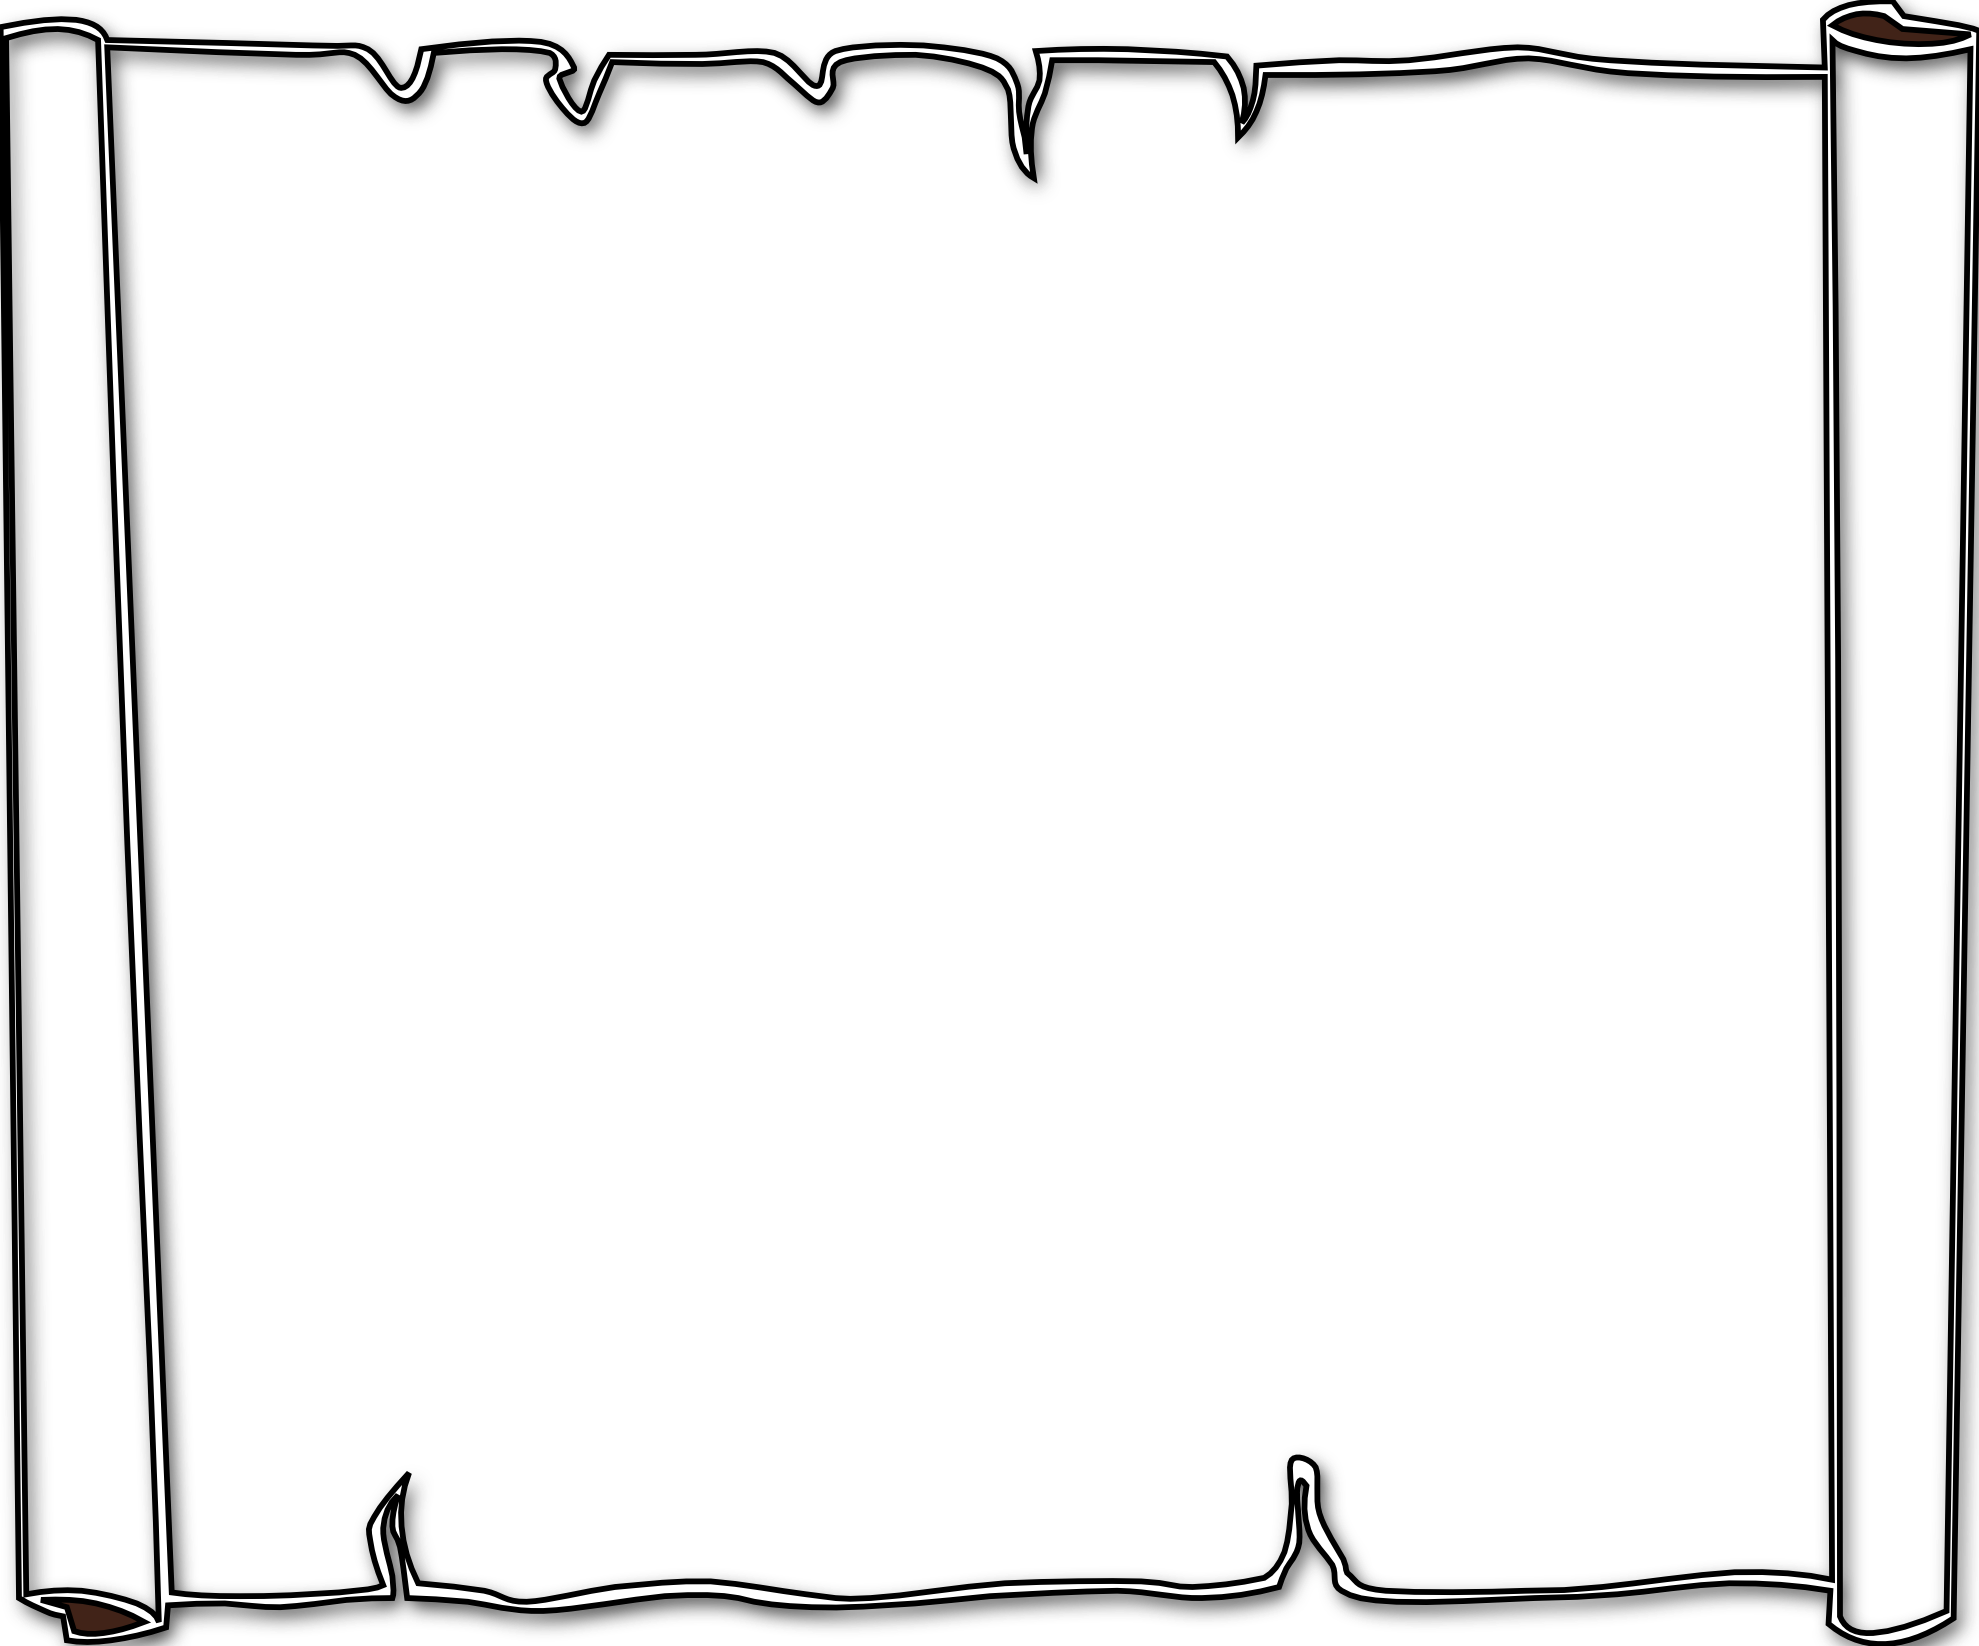 Single Line Borders Clip Art : Single line border black and white pixshark